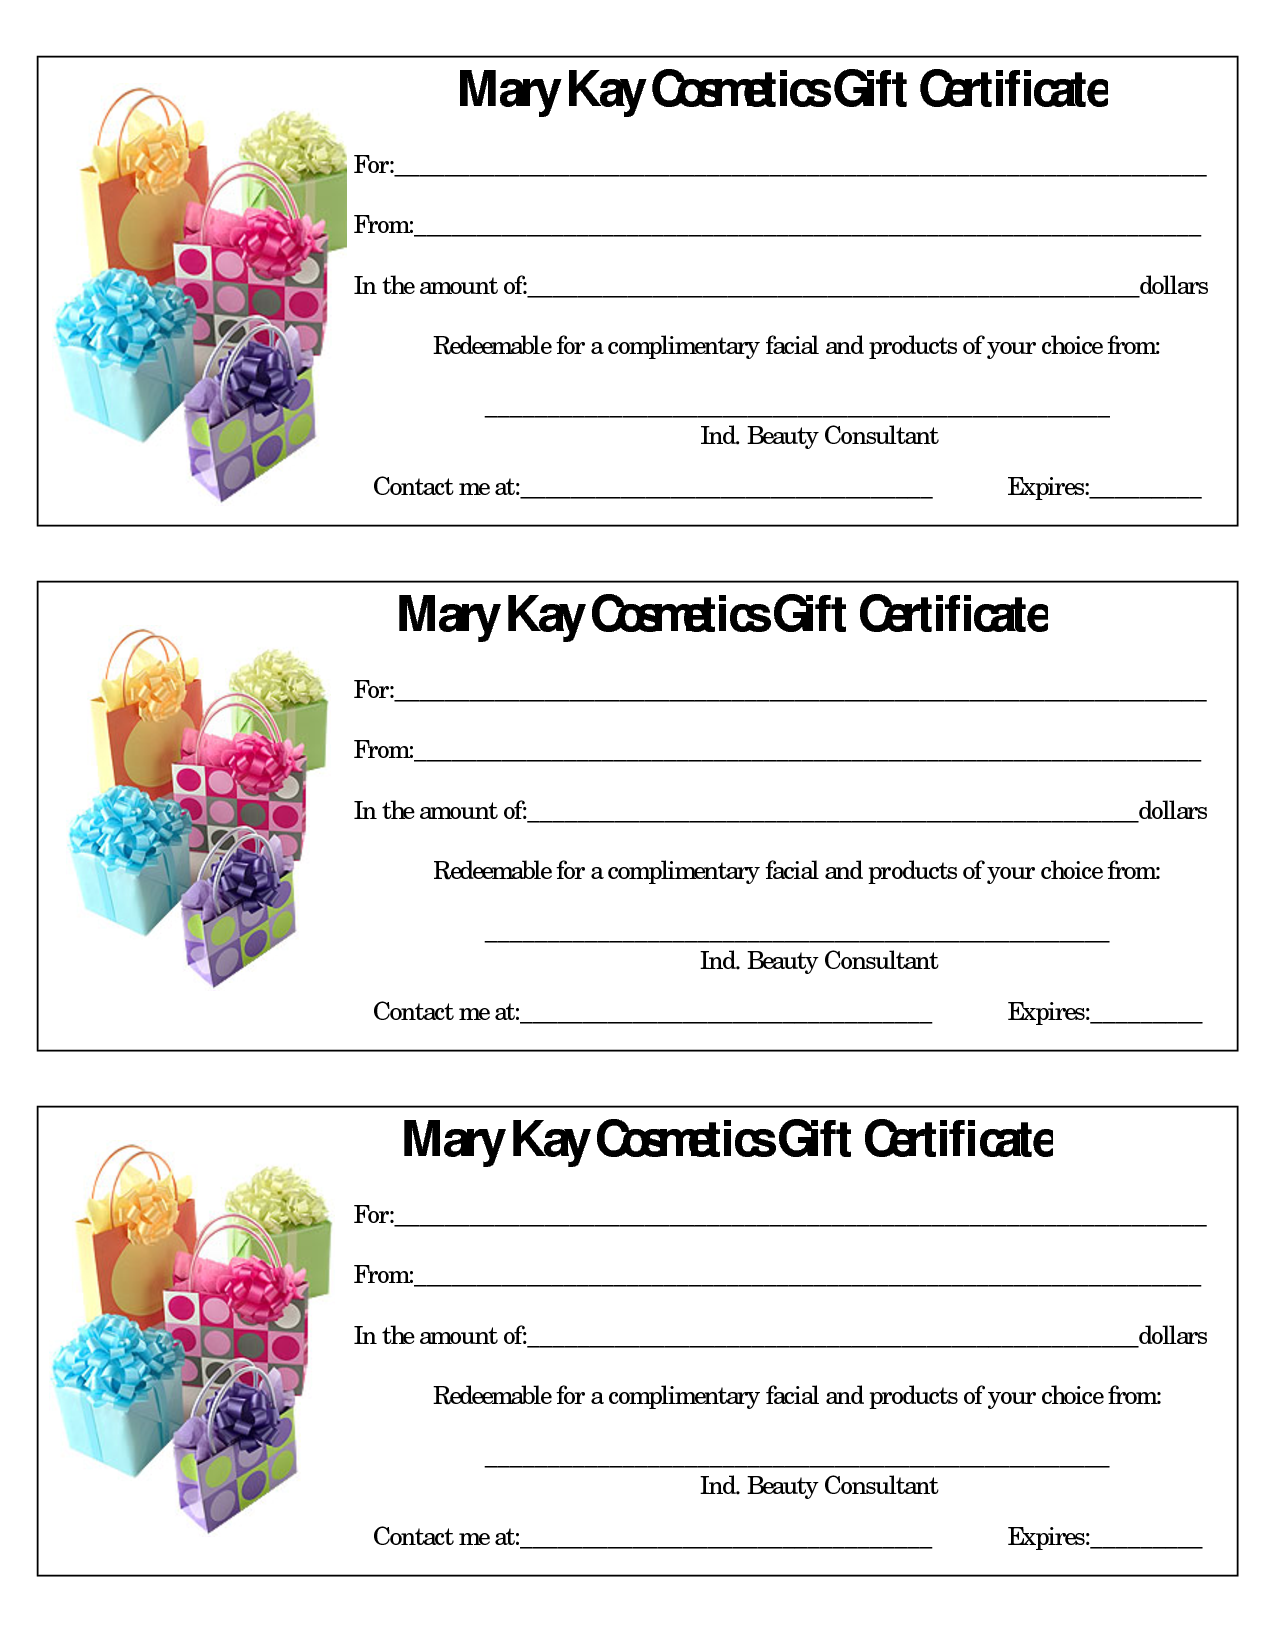 mary kay certificate seckhoff marykay com looking for that perfect personalized gift for that special person give the a mary kay gift certificate to purchase a certificate call or my